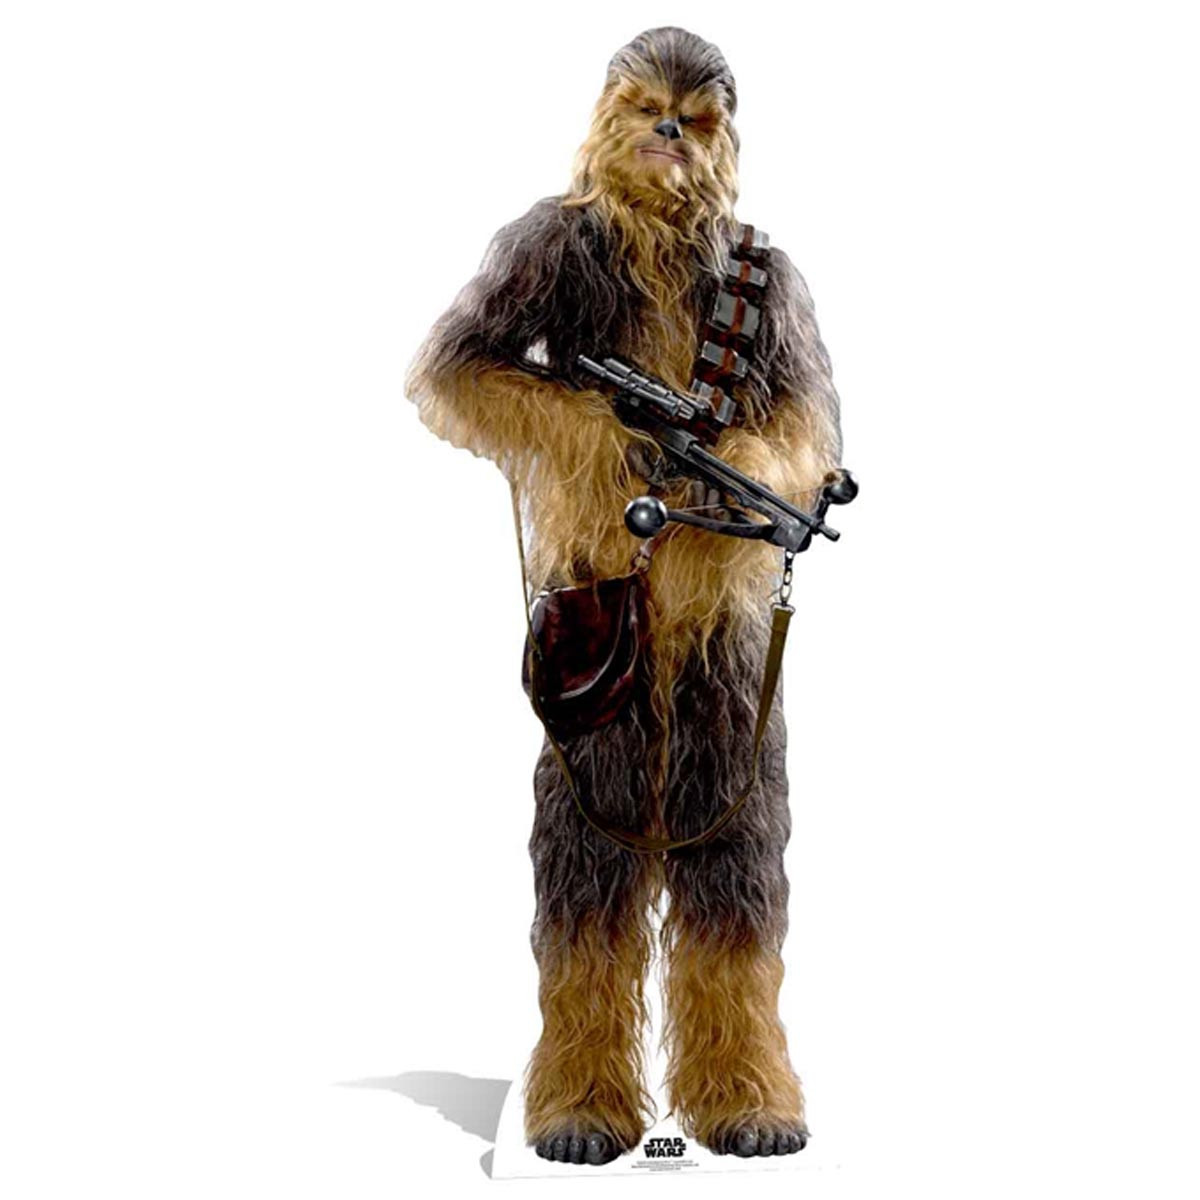 Figurine en carton taille réelle Chewbacca EP7 Star Wars